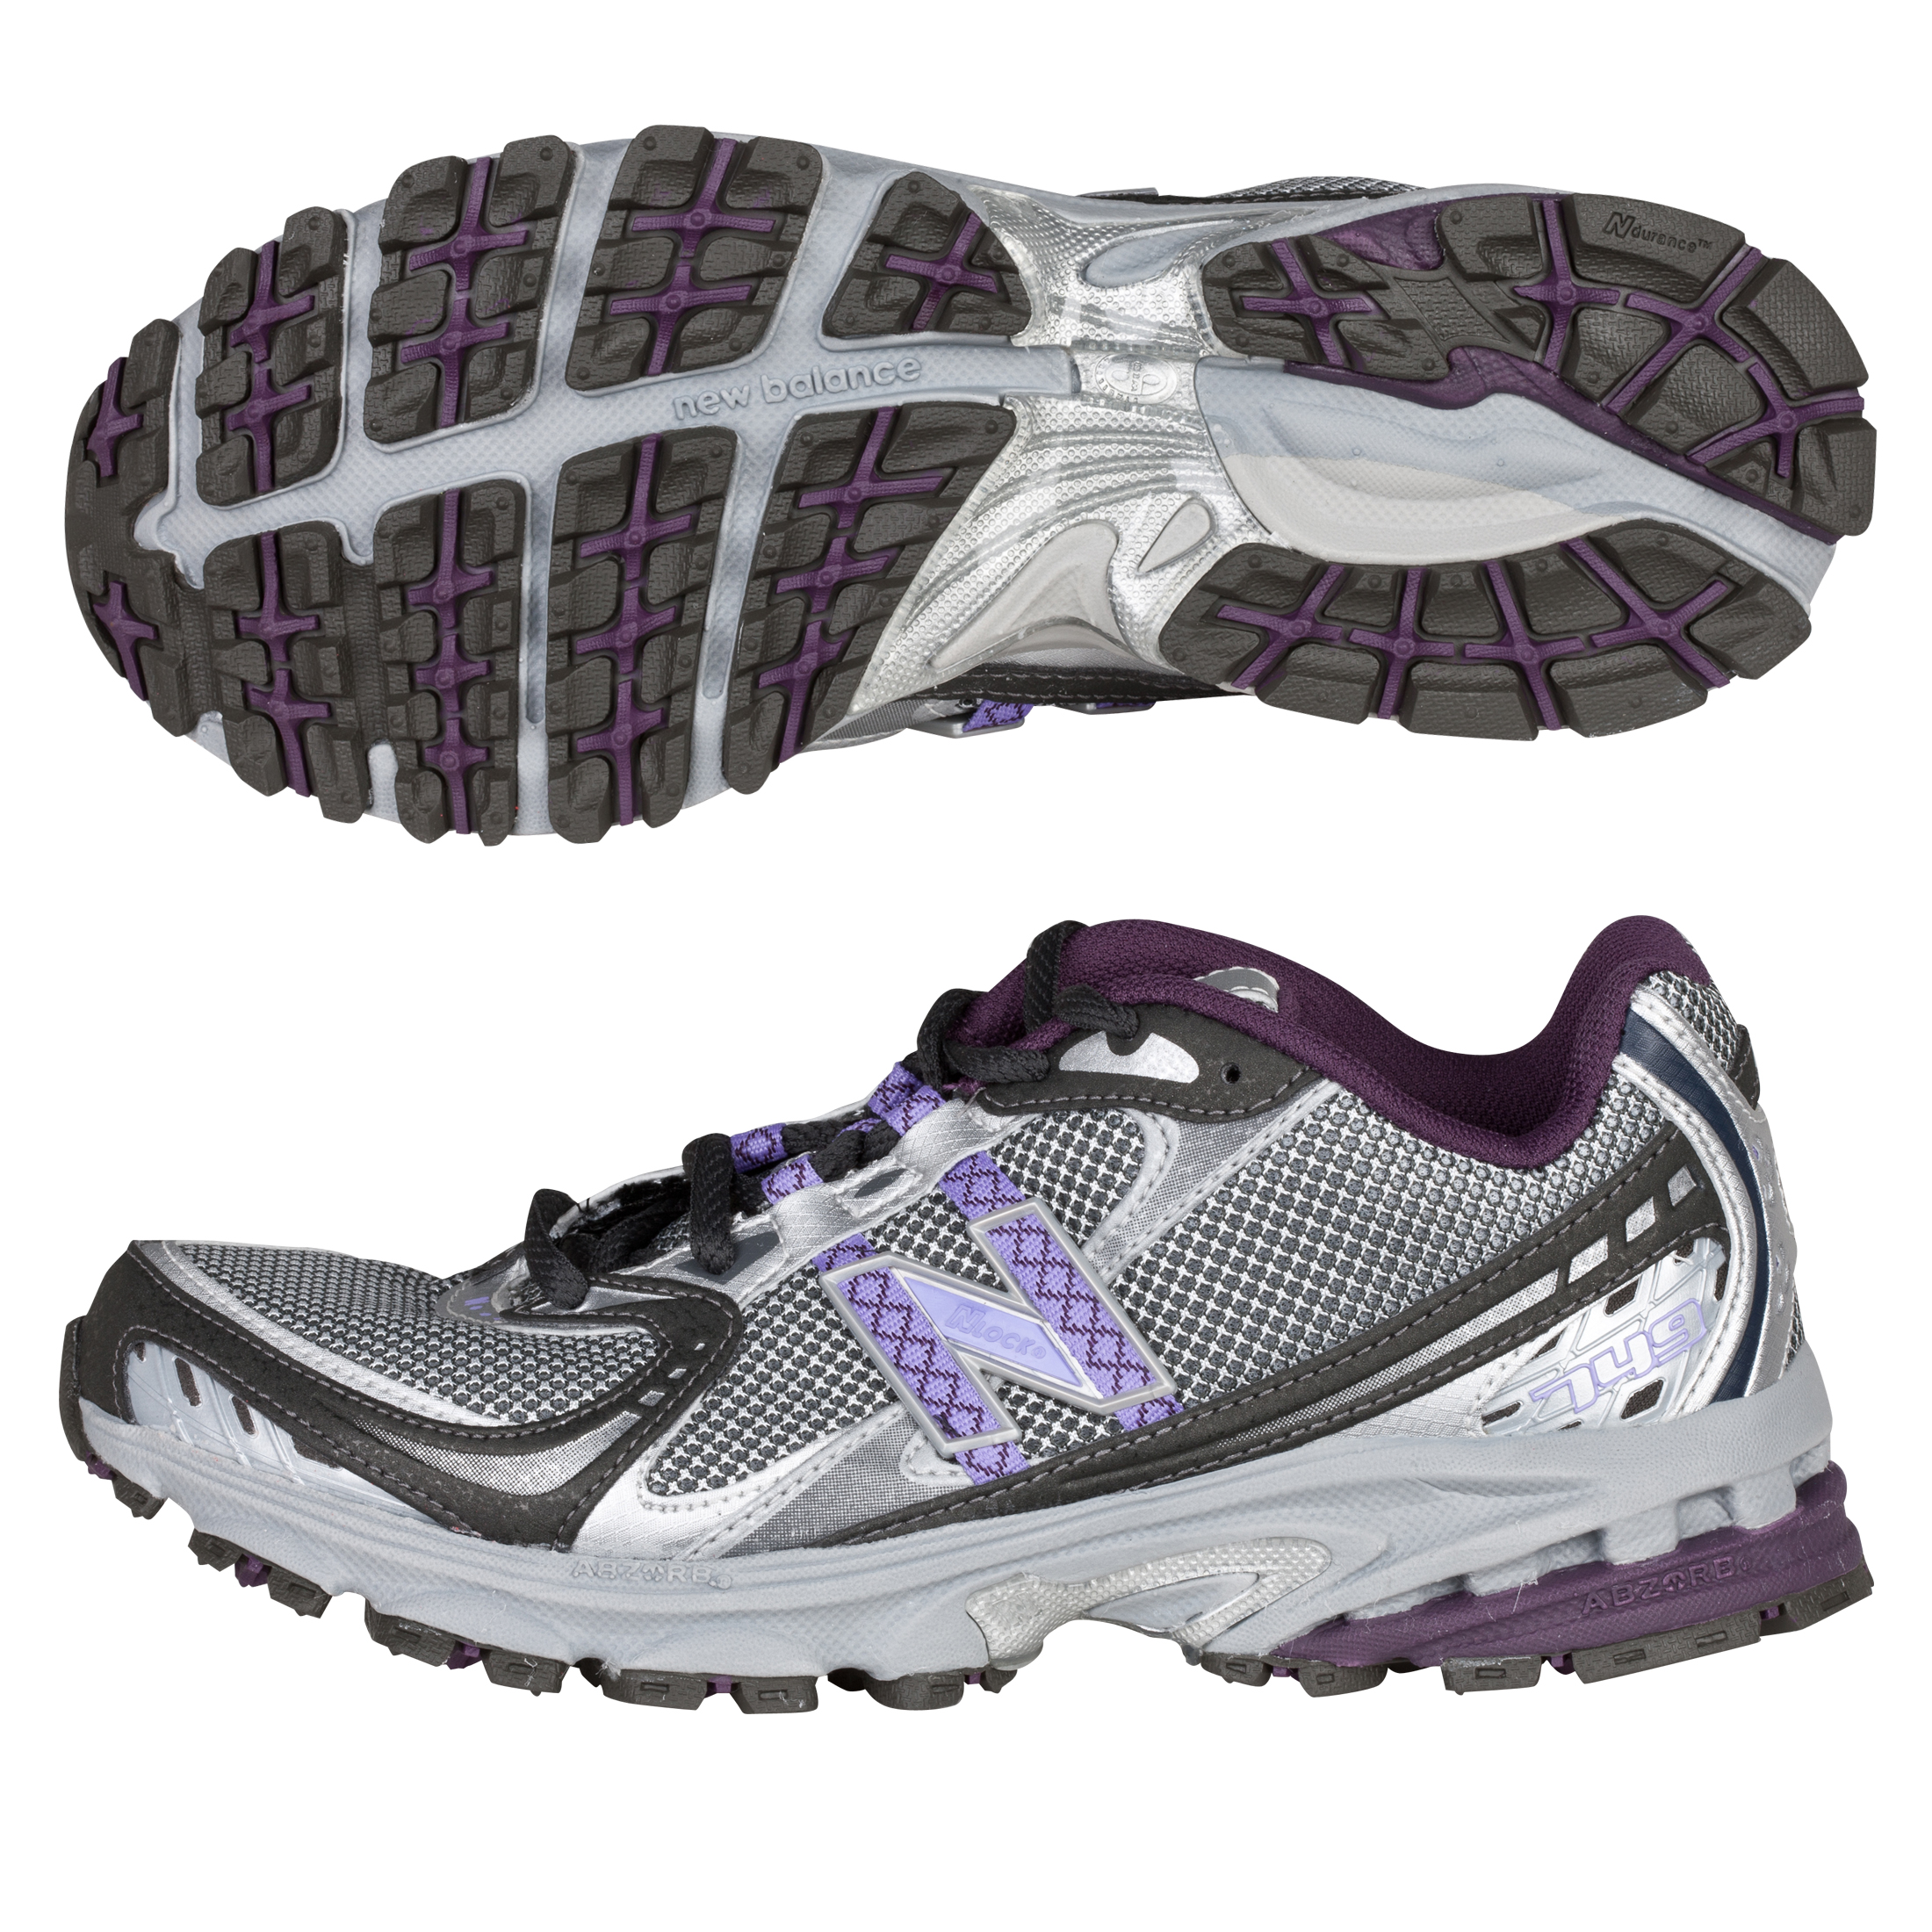 New Balance 749 Trainers - Grey/Purple - Womens